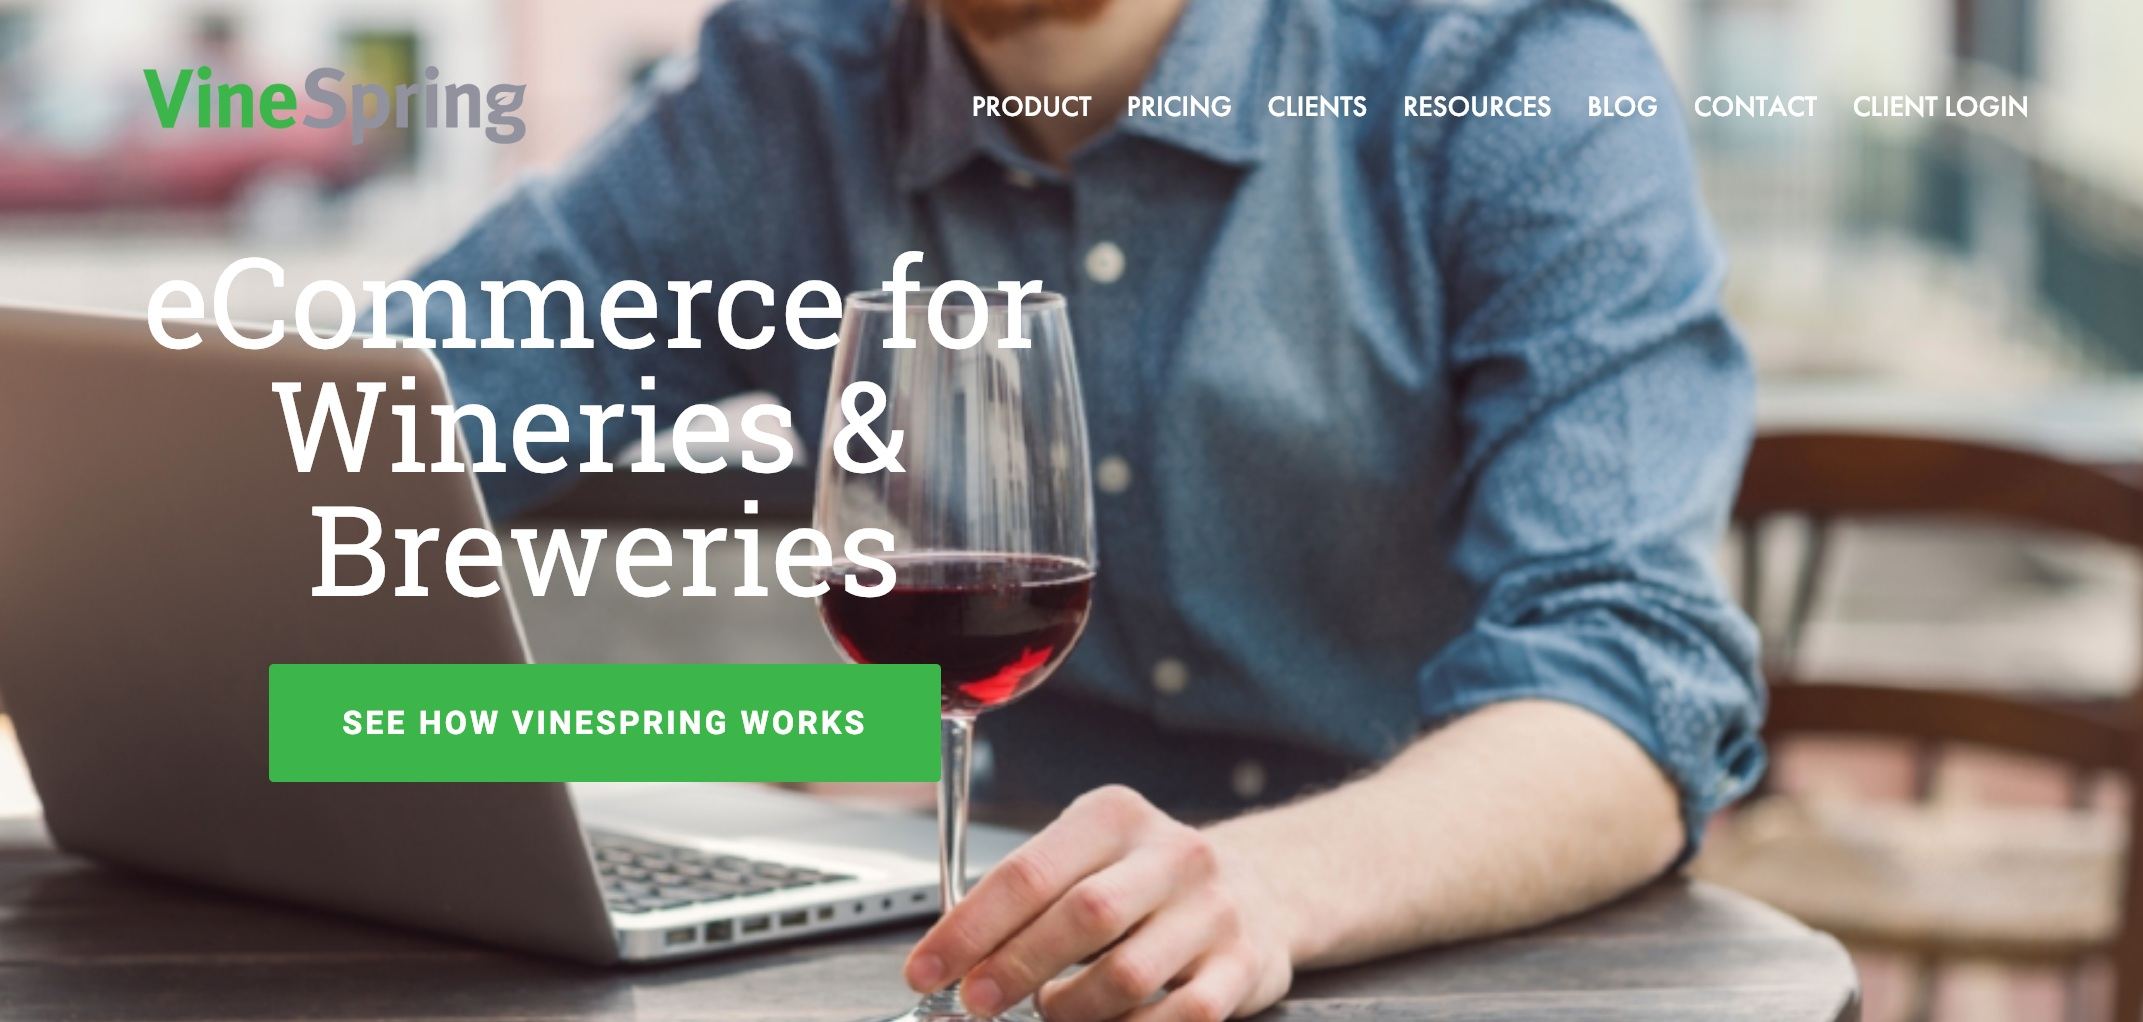 VineSpring+Website+Redesign